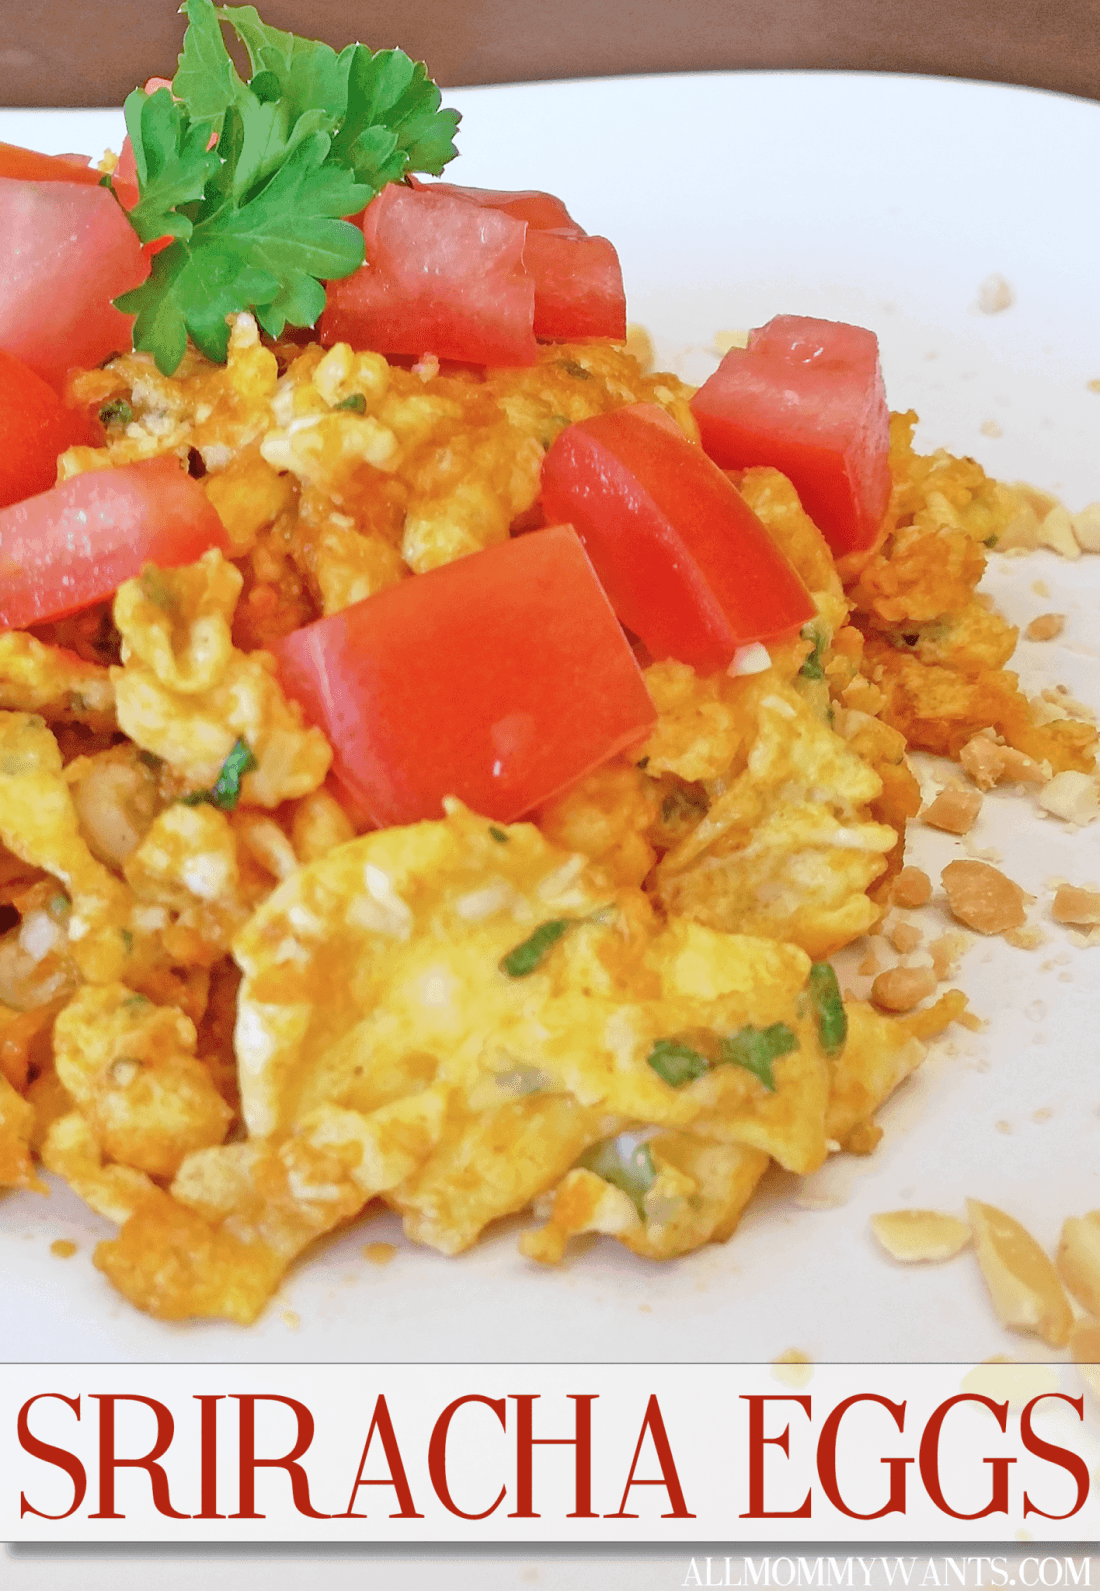 Recipe: Sriracha Eggs – 6 Weight Watchers Smartpoints Per Serving